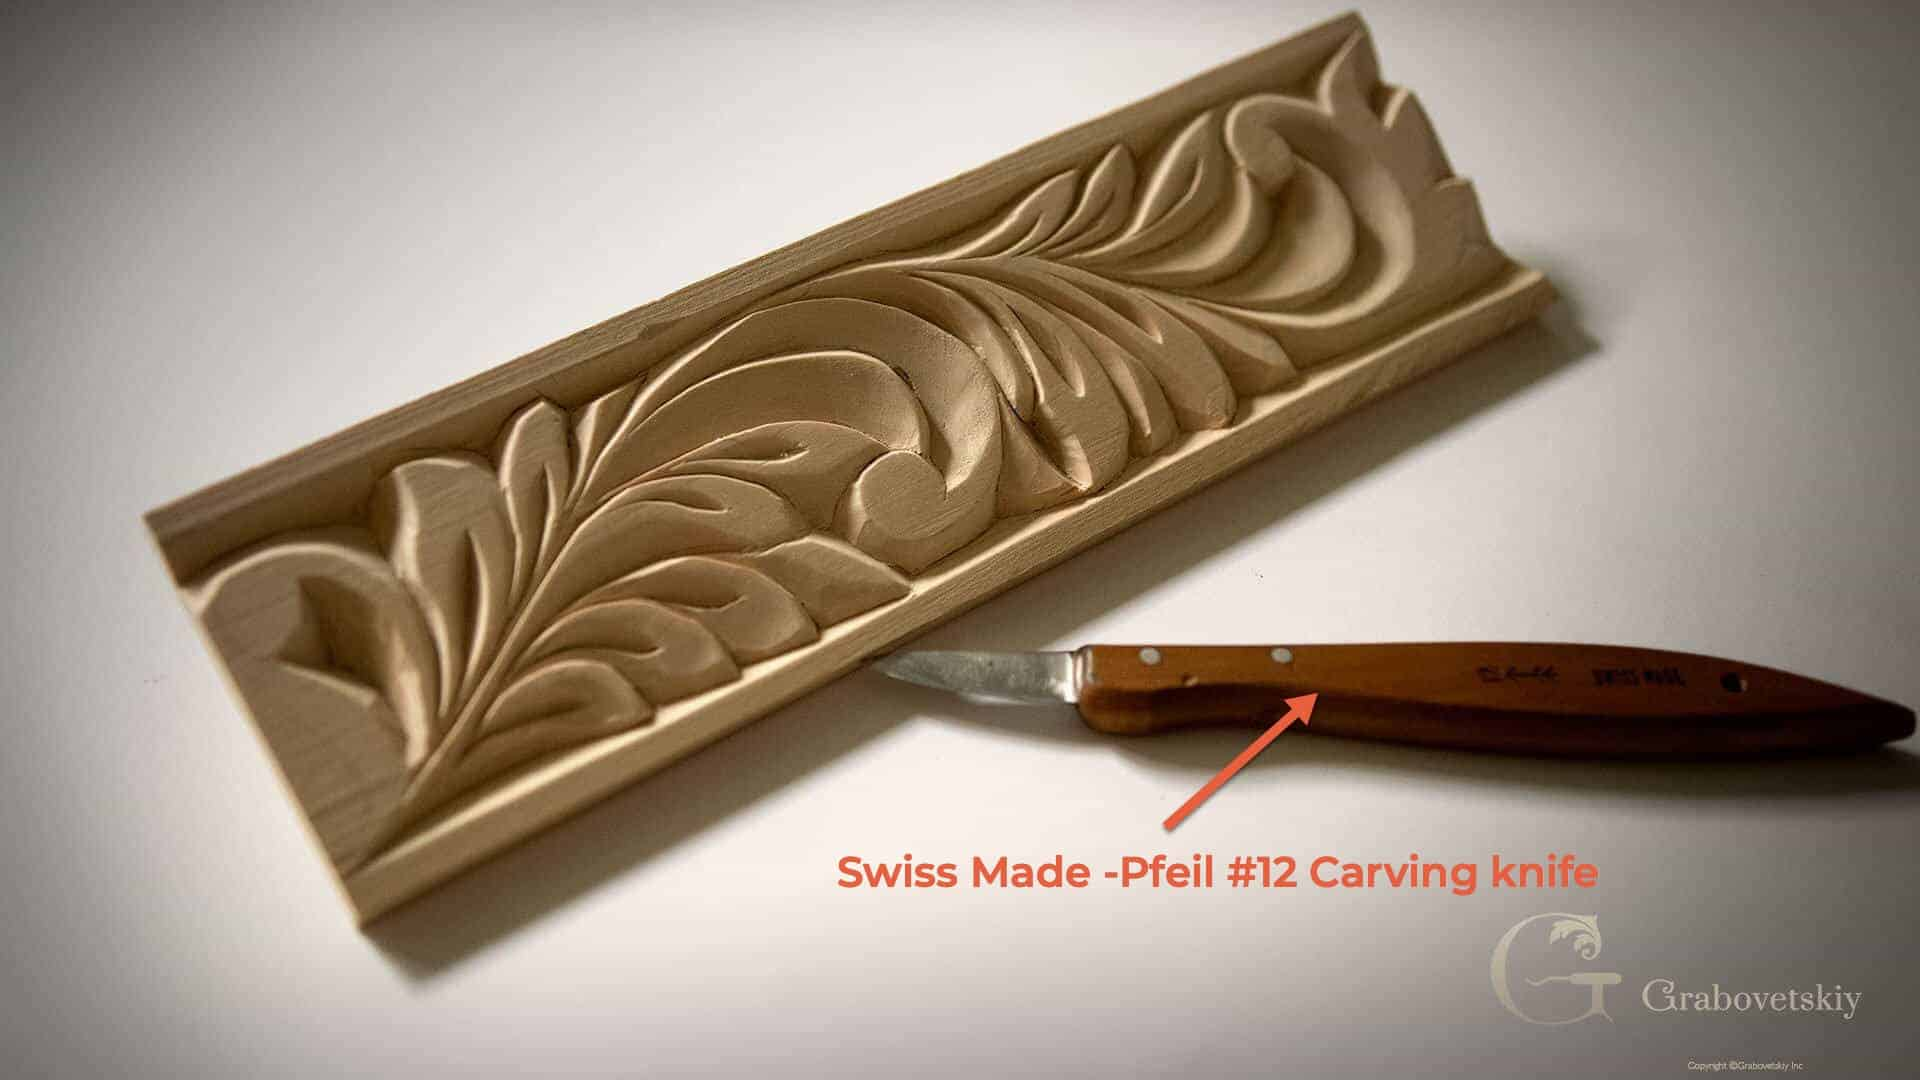 What is the bestt tools for beginner woodcarver - Swiss Made Pfeil #12 chip carving knife